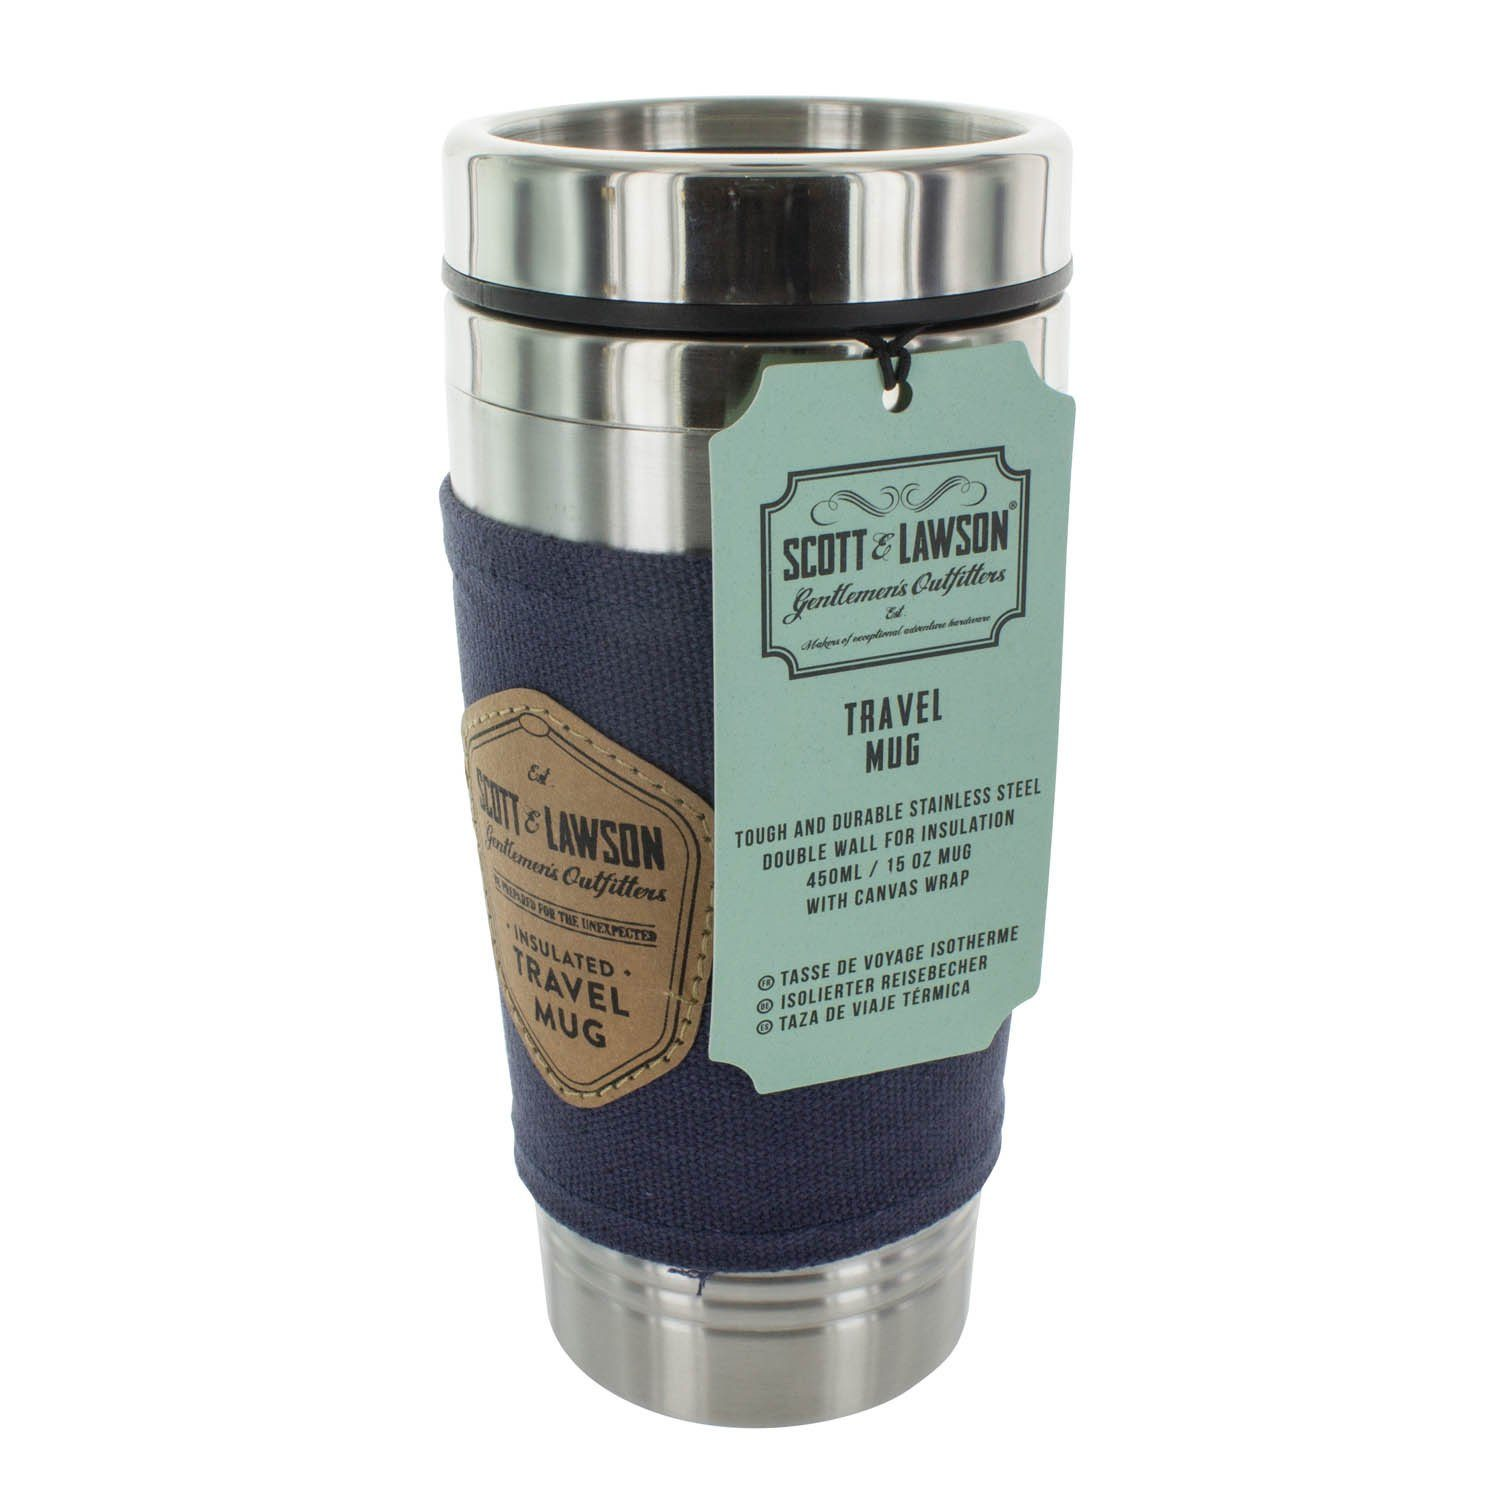 Scotts & Lawson Travel Mug Travel Accessories Paladone